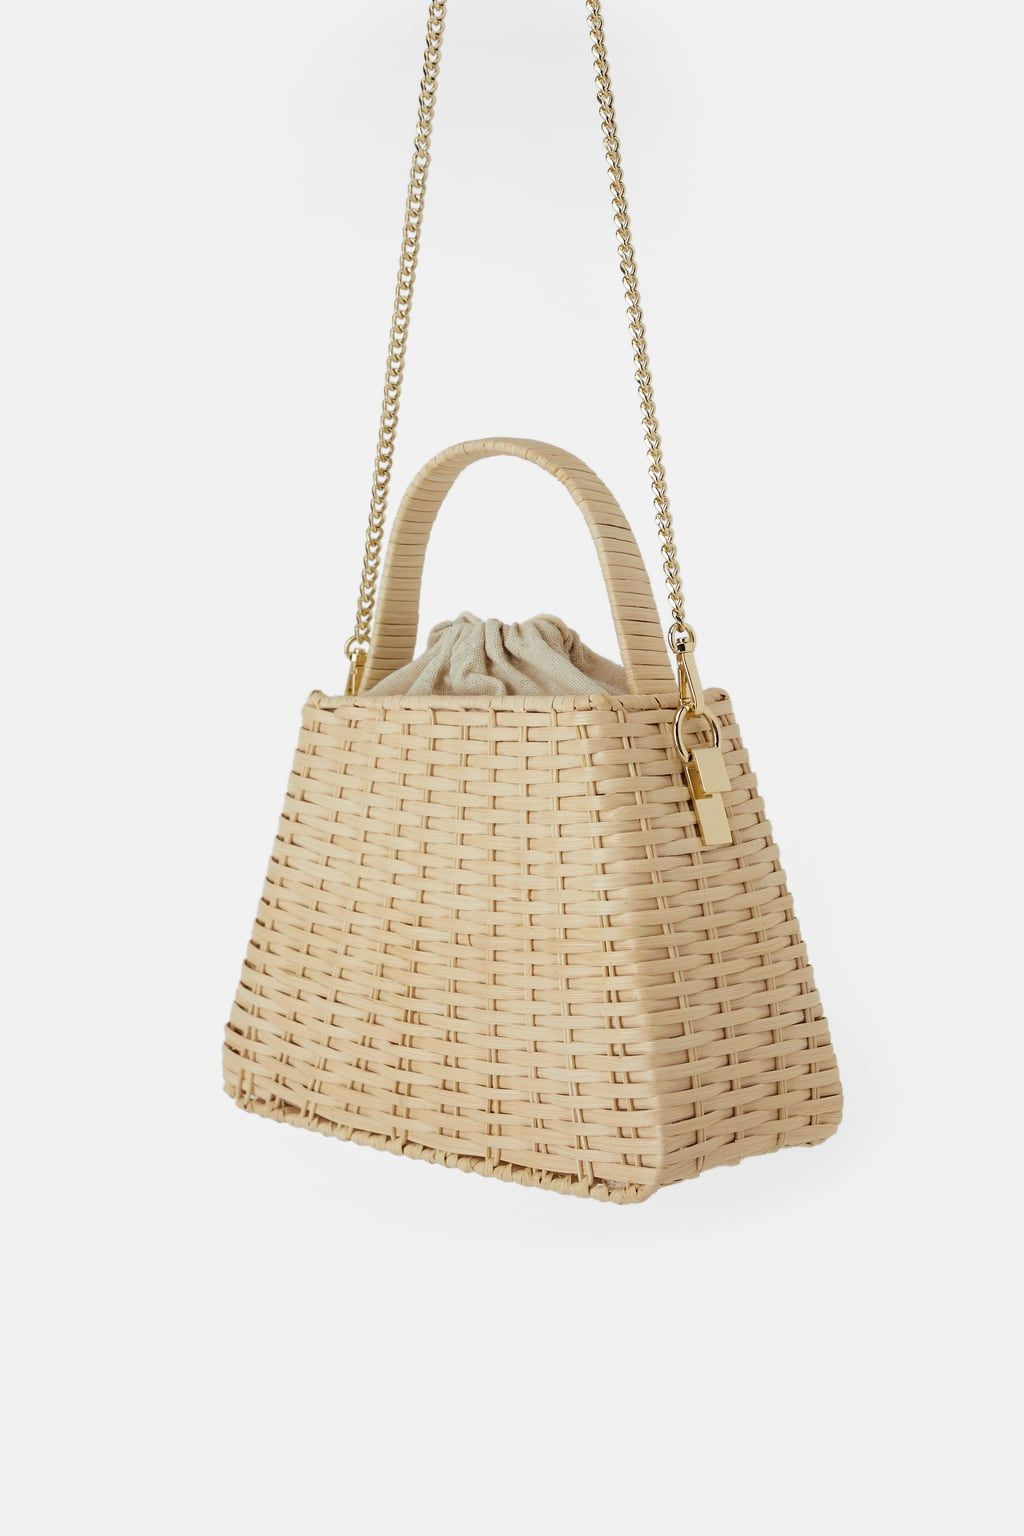 788d37b65bc Natural city bag with chain in 2019 | Bags | City bag, Zara bags, Bags